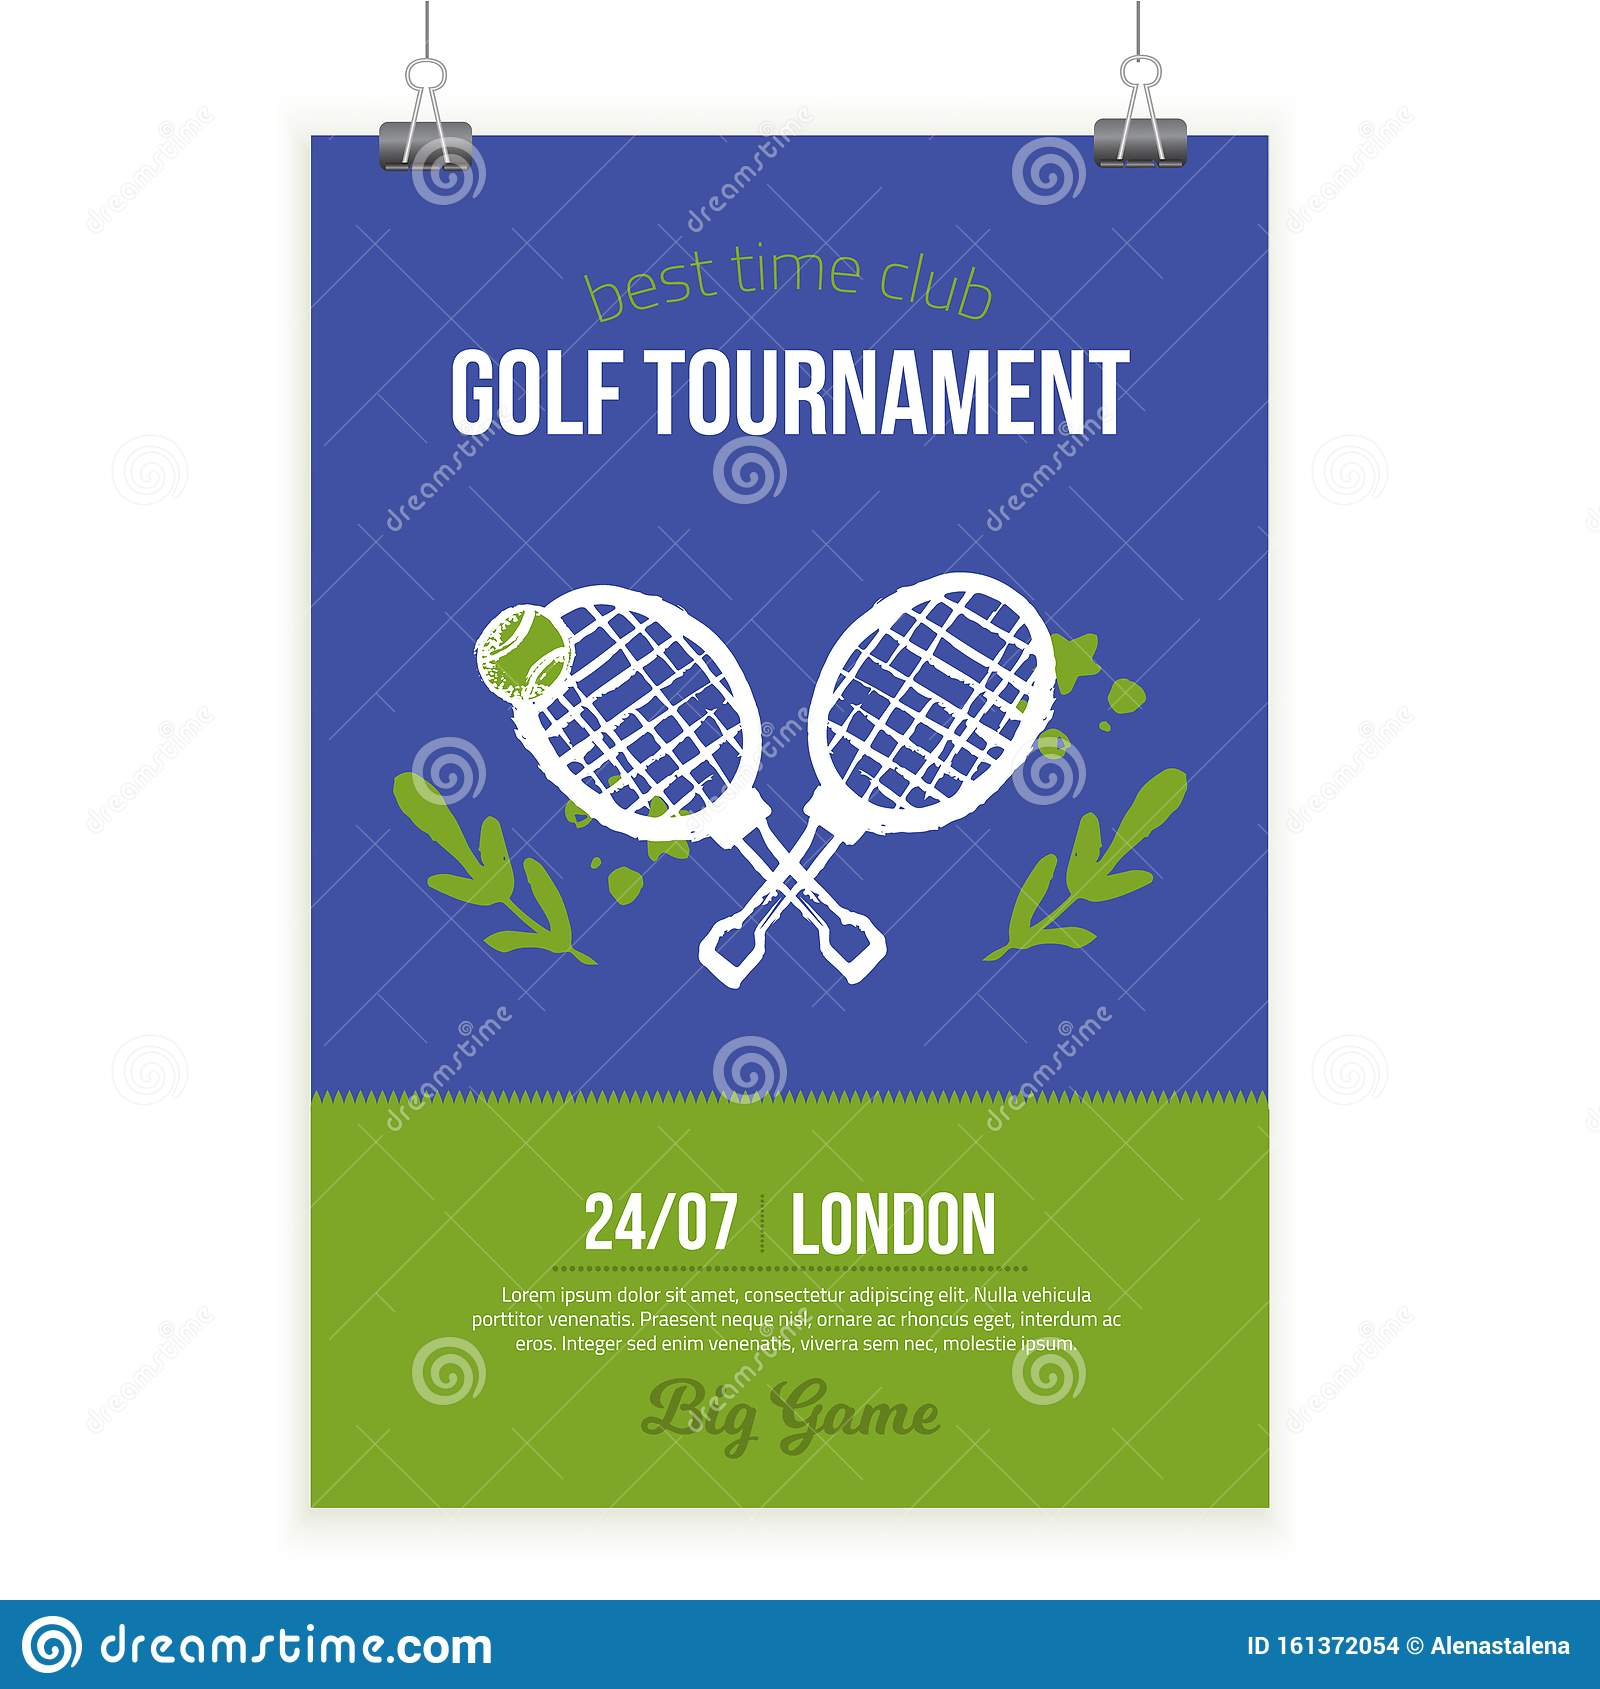 Tennis Lesson Flyer Template from thumbs.dreamstime.com